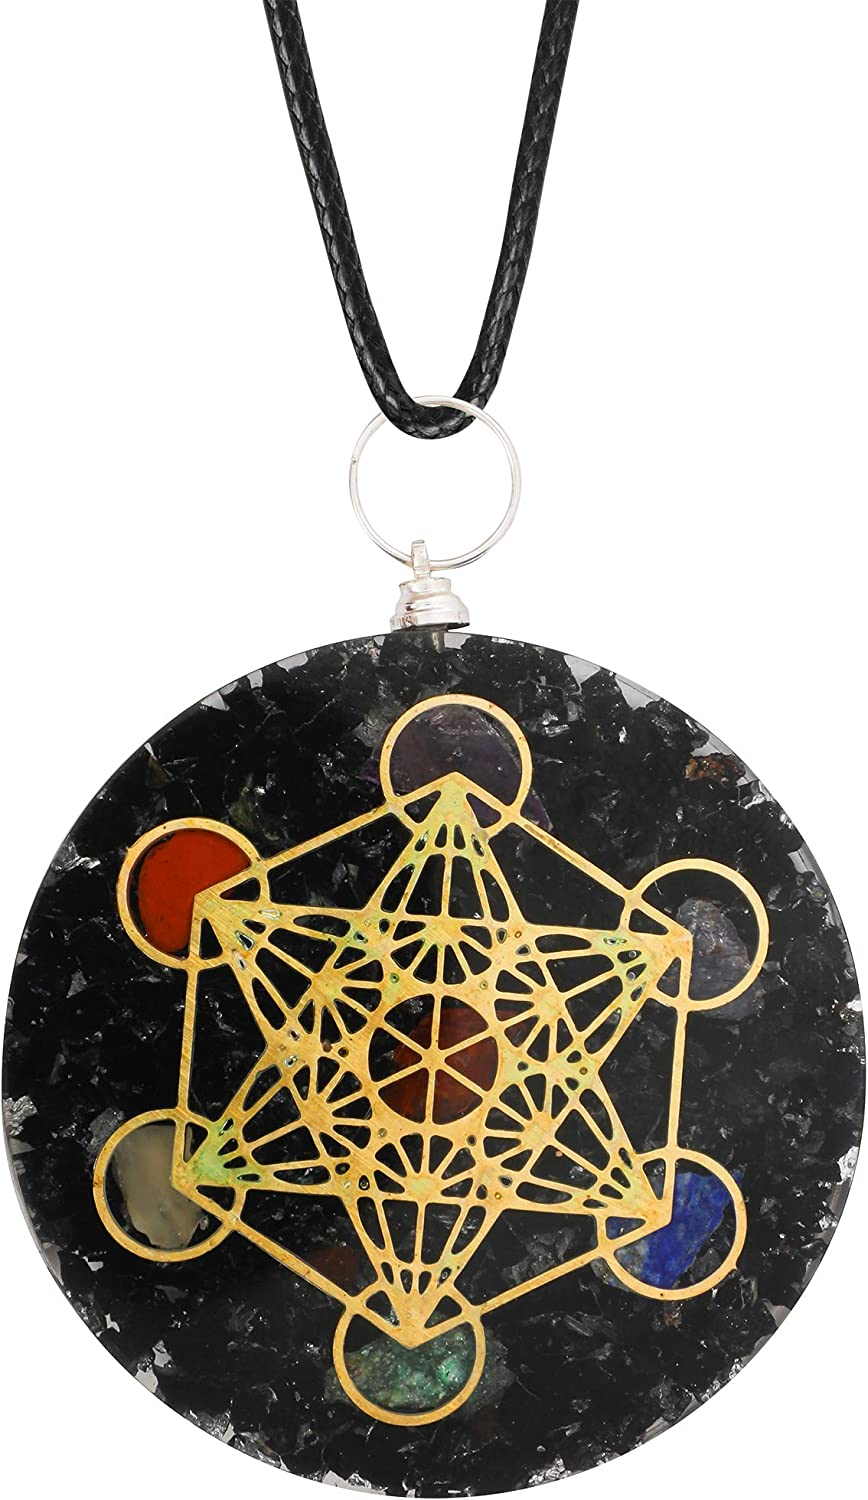 Art of Creation Black Tourmaline With SBB Tesla Coil Pendant For Women And Men | Orgone 7 chakra Adjustable pendant | Negative Energy Protection | Orgonite Balancing Chakra | Revitalization and Relaxation | Healing Crystal Stone